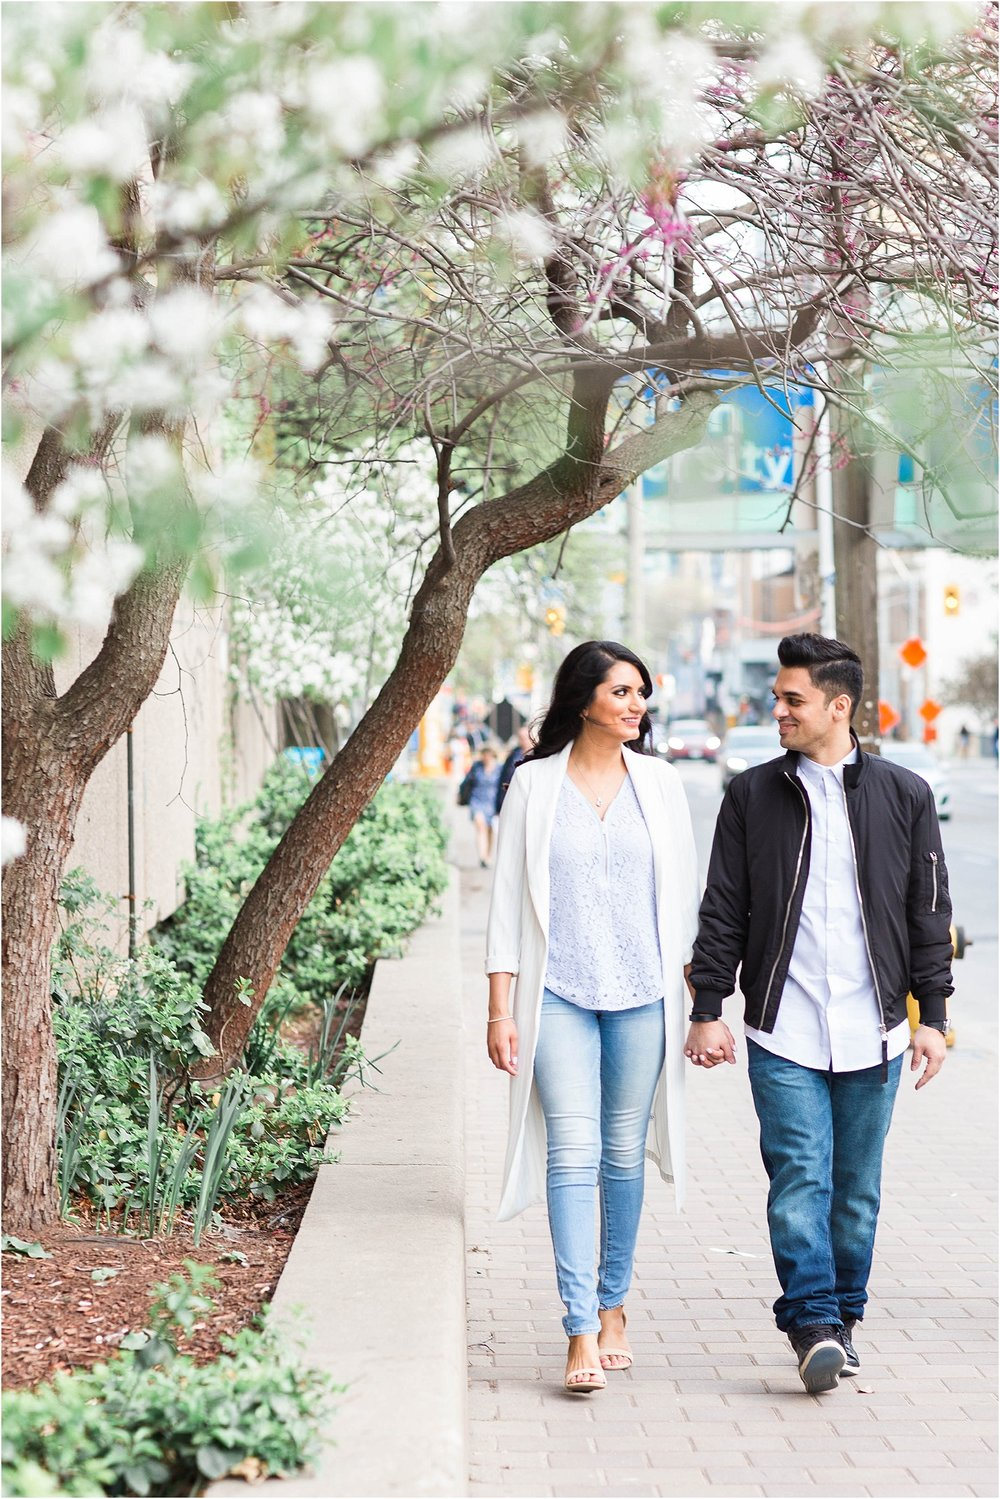 Ryerson-University-Humber-Bay-Bridge-Engagement-Session-Toronto-Mississauga-Brampton-Scarborough-GTA-Pakistani-Indian-Wedding-Engagement-Photographer-Photography_0009.jpg